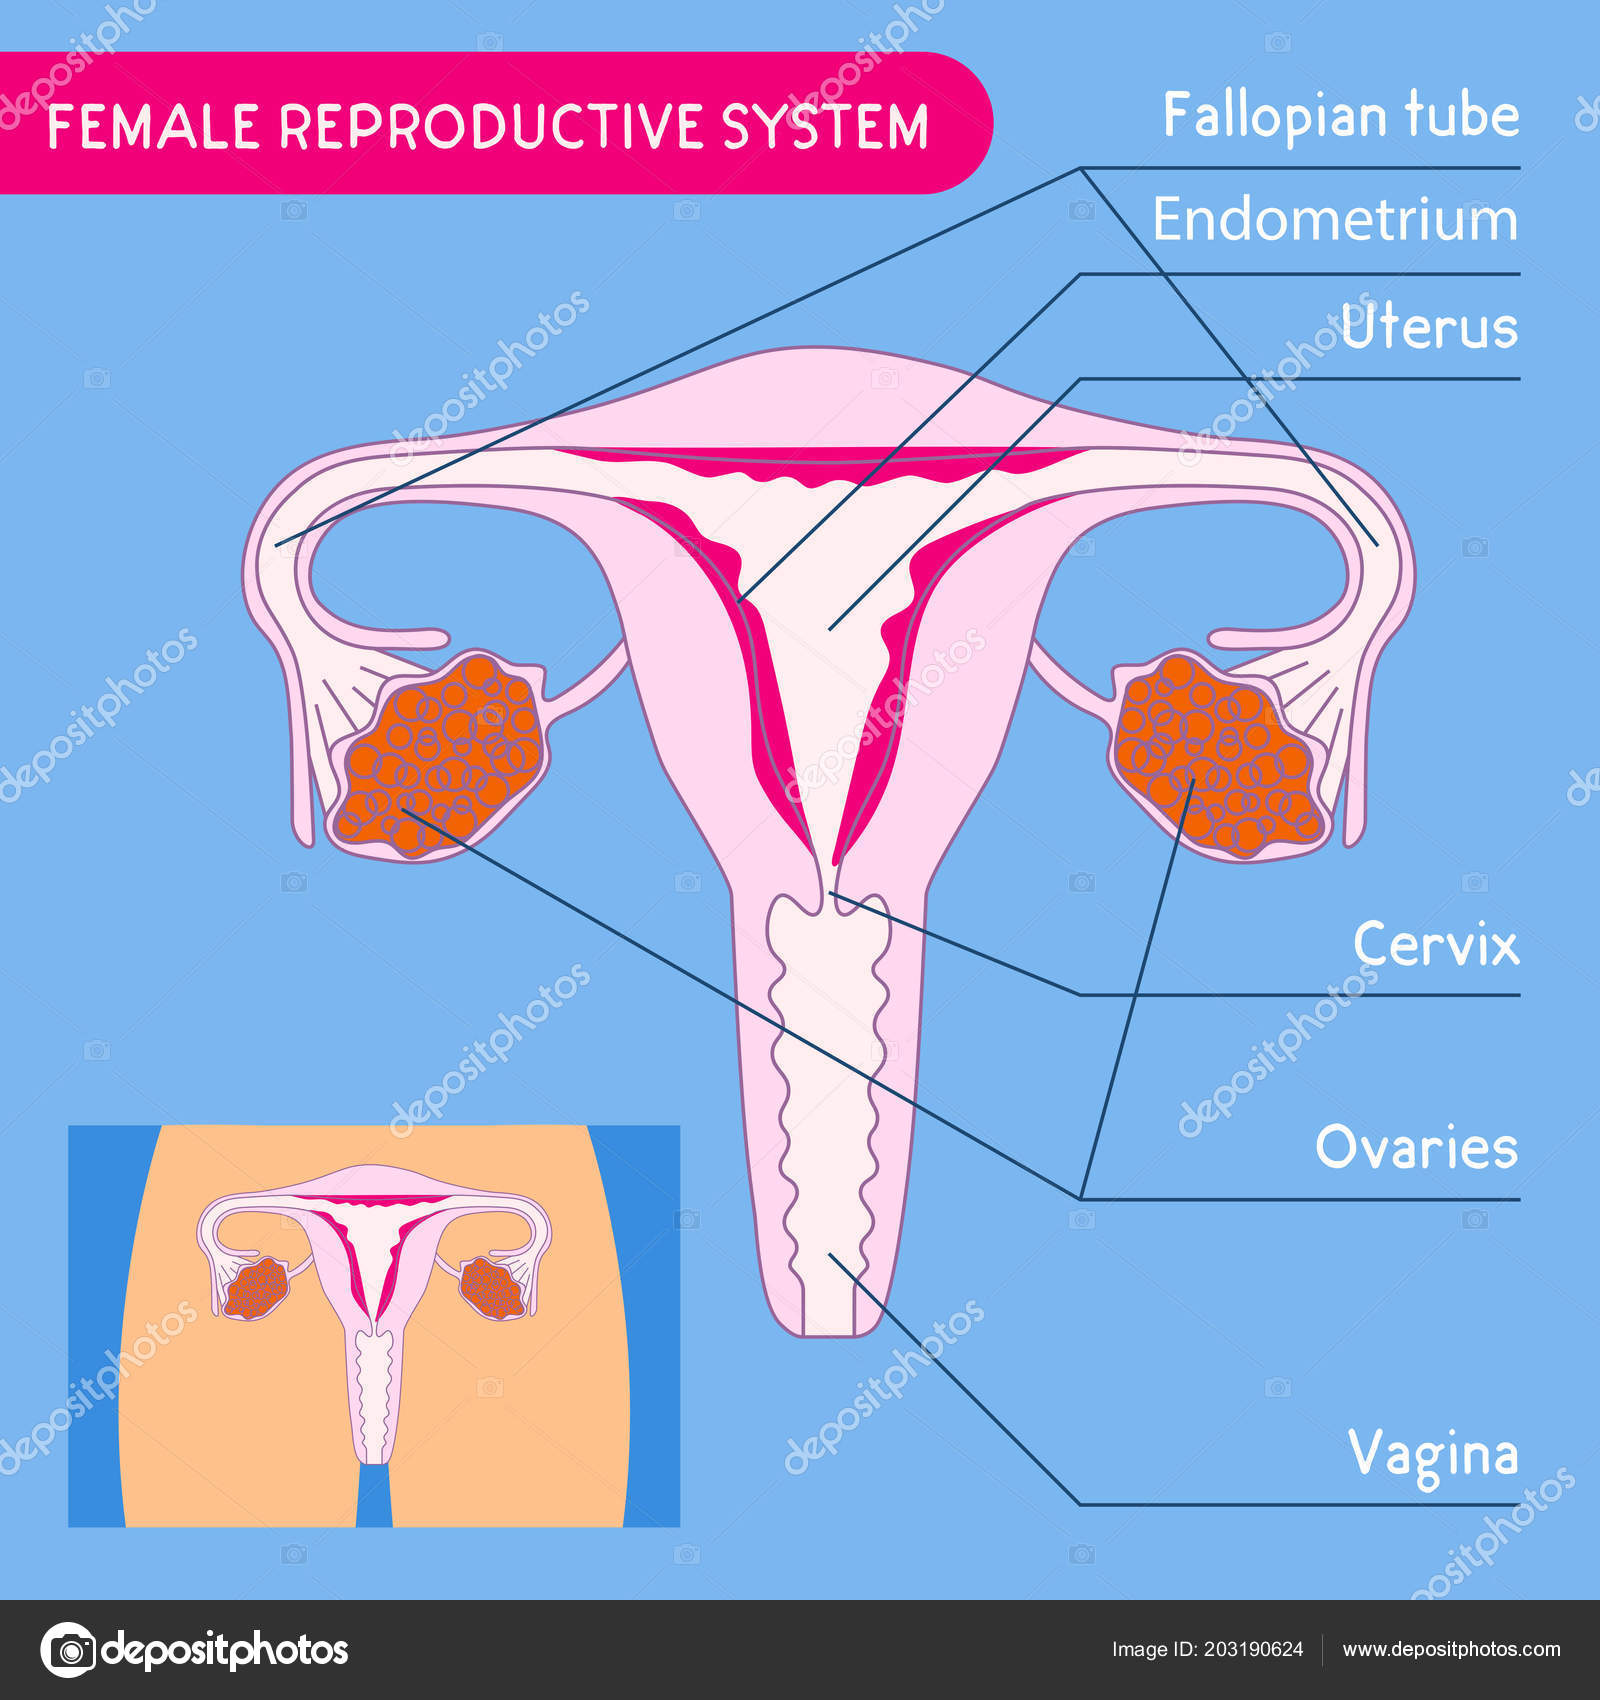 Female Reproductive System Human Anatomy Uterus Medical Poster